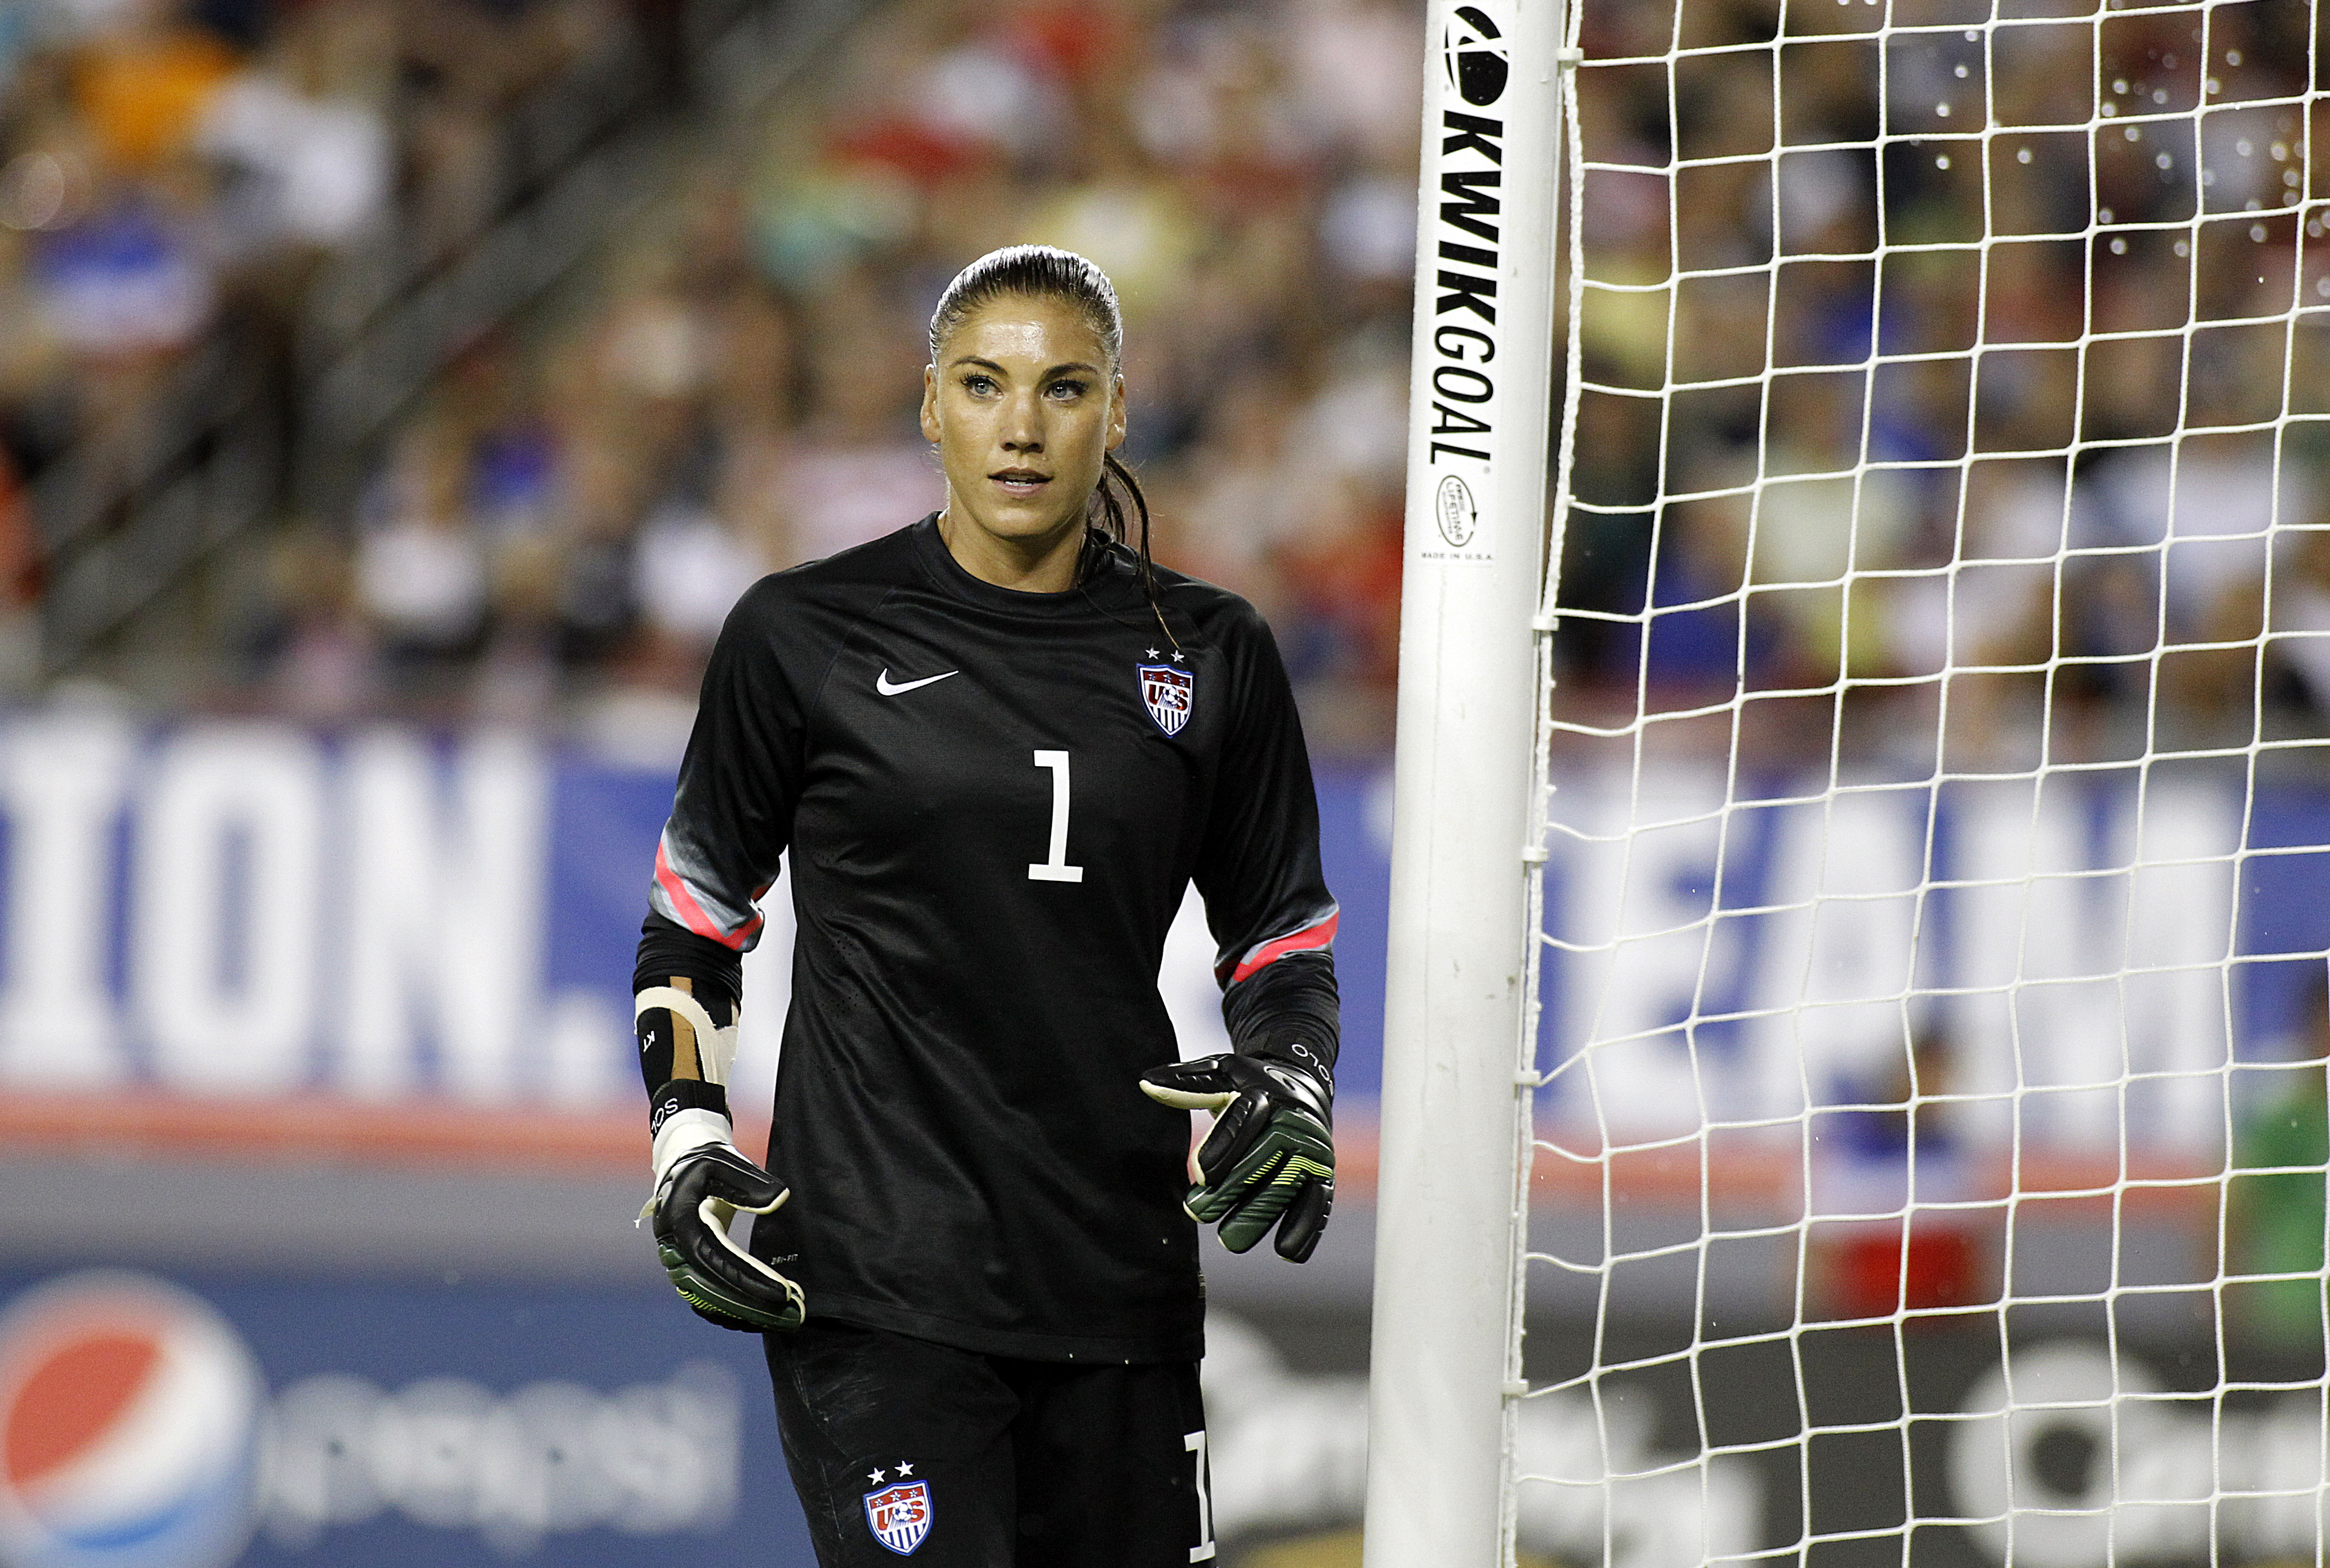 Goalkeeper Hope Solo takes her position in goal during the second half of a women's friendly soccer match against France on June 14, 2014 at Raymond James Stadium in Tampa, Florida.